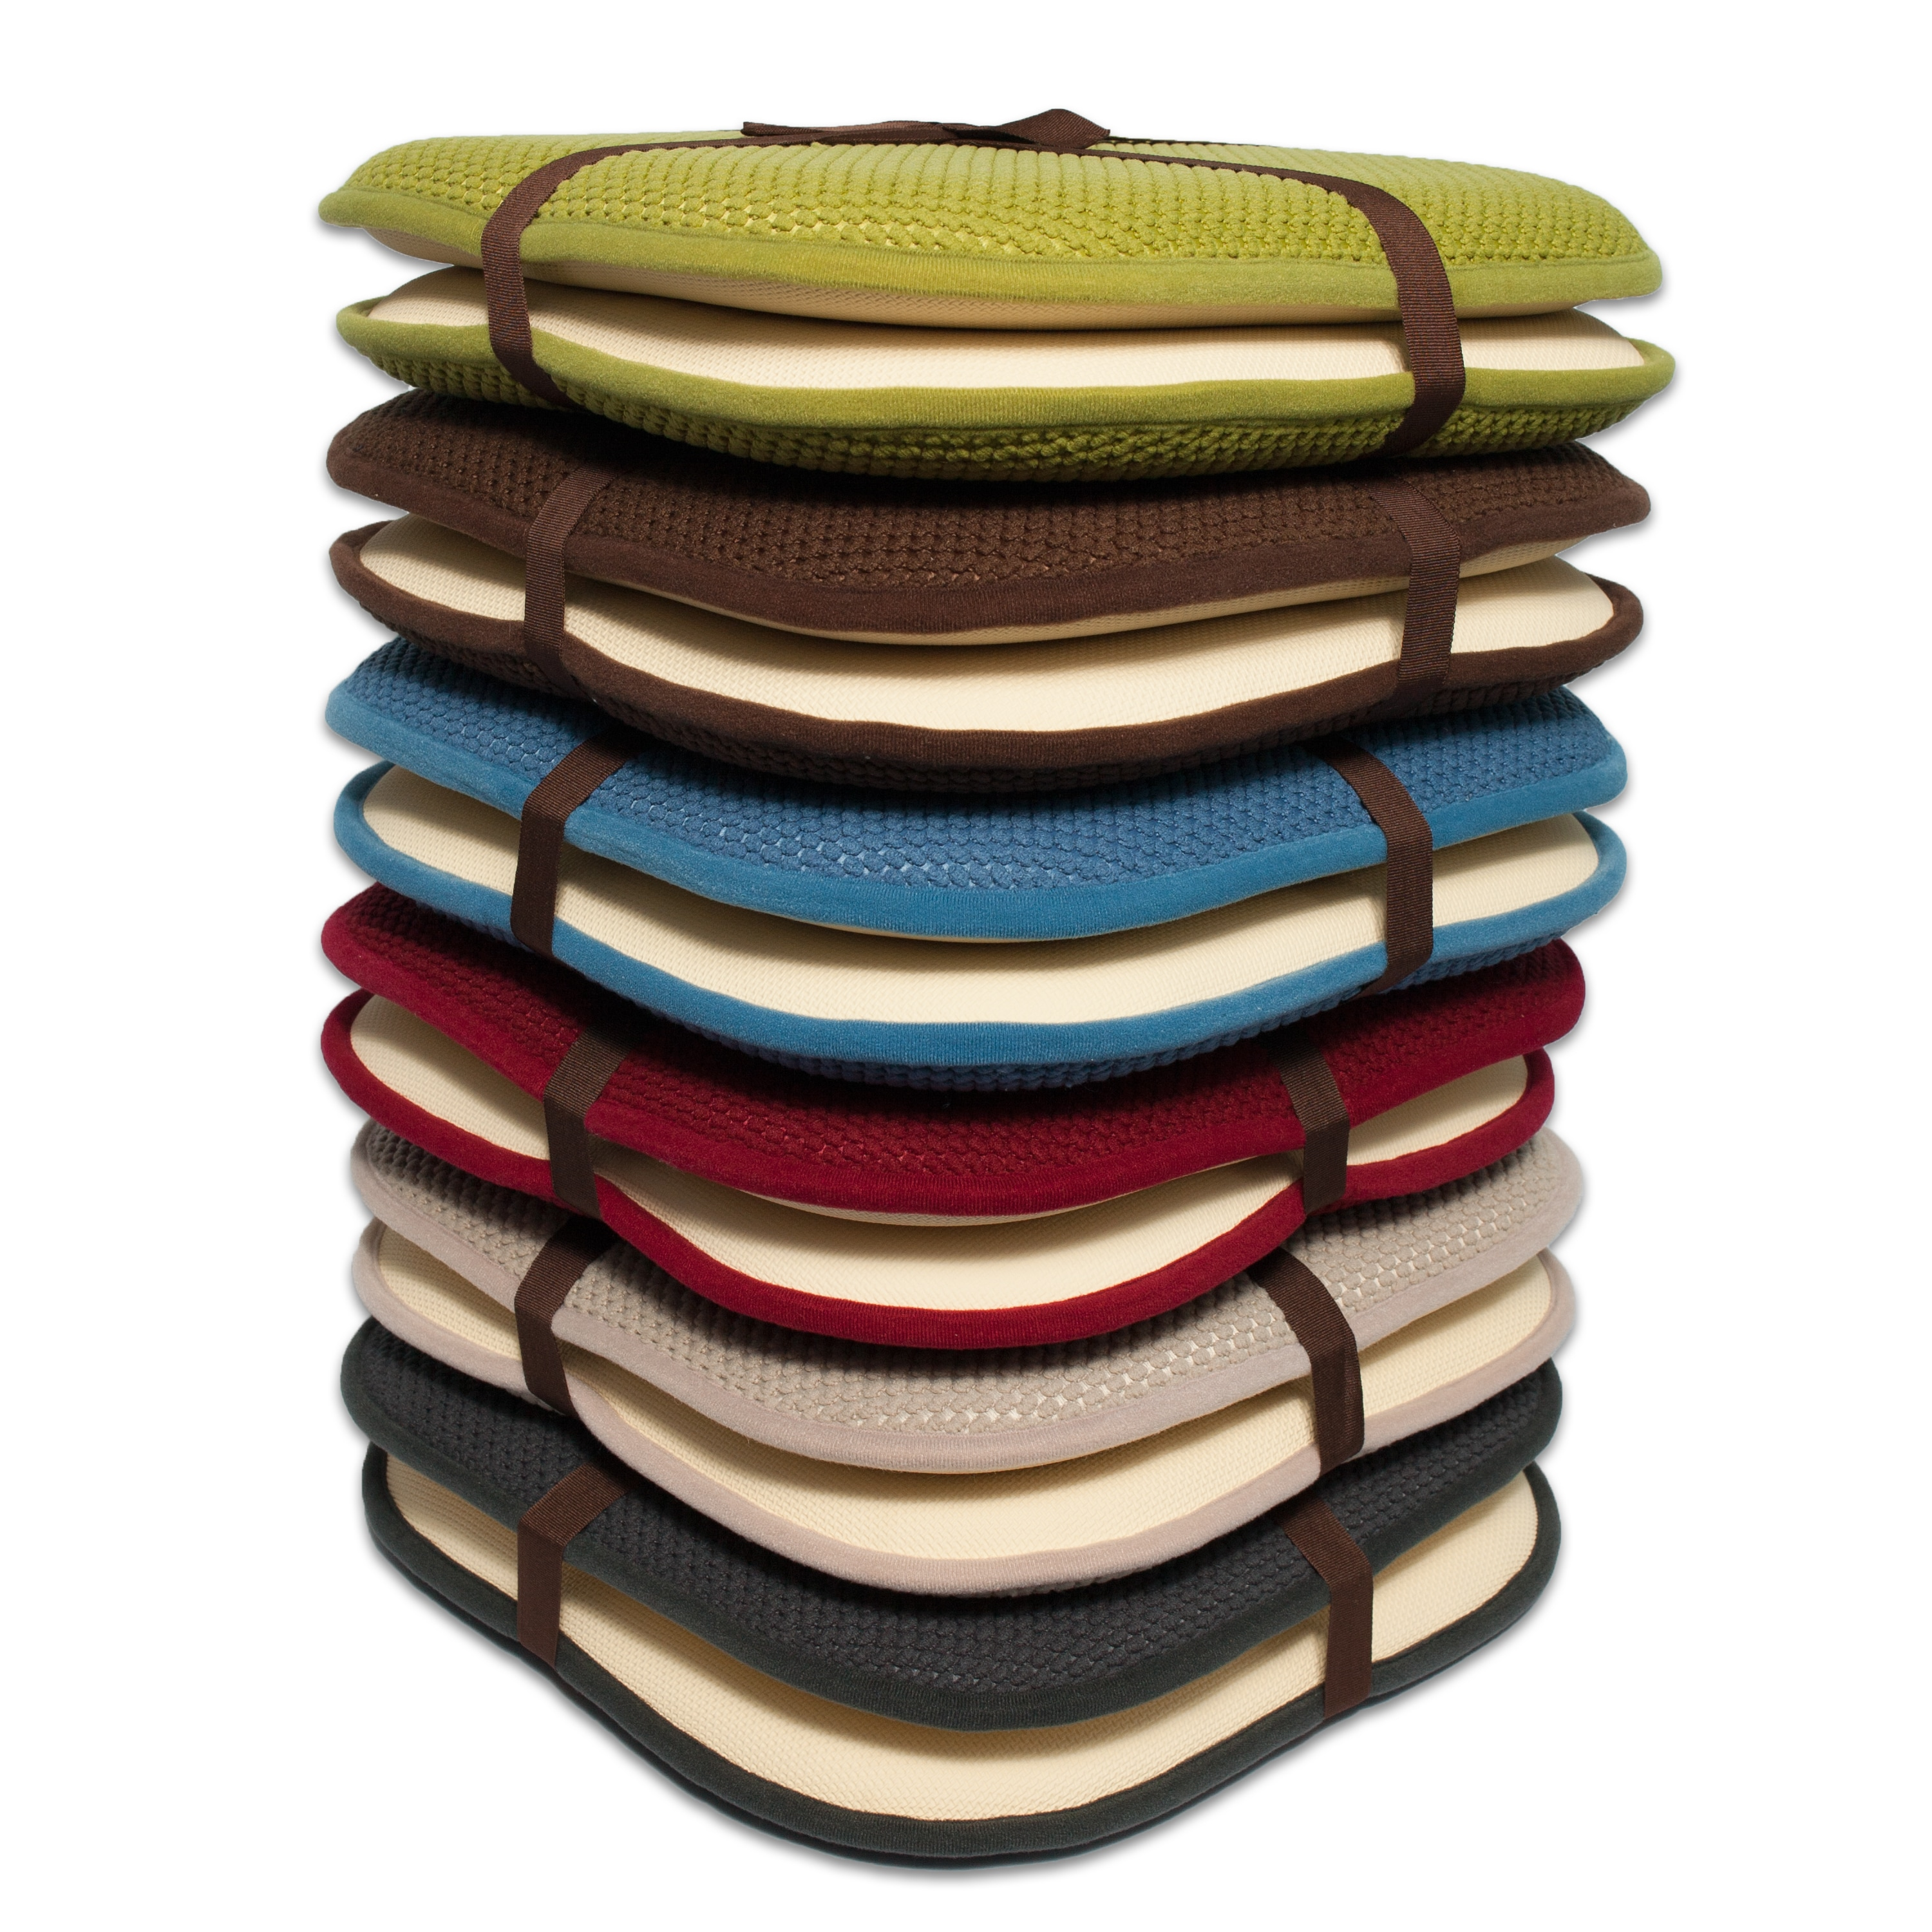 Attractive 16x16 Memory Foam Chair Pad Seat Cushion With